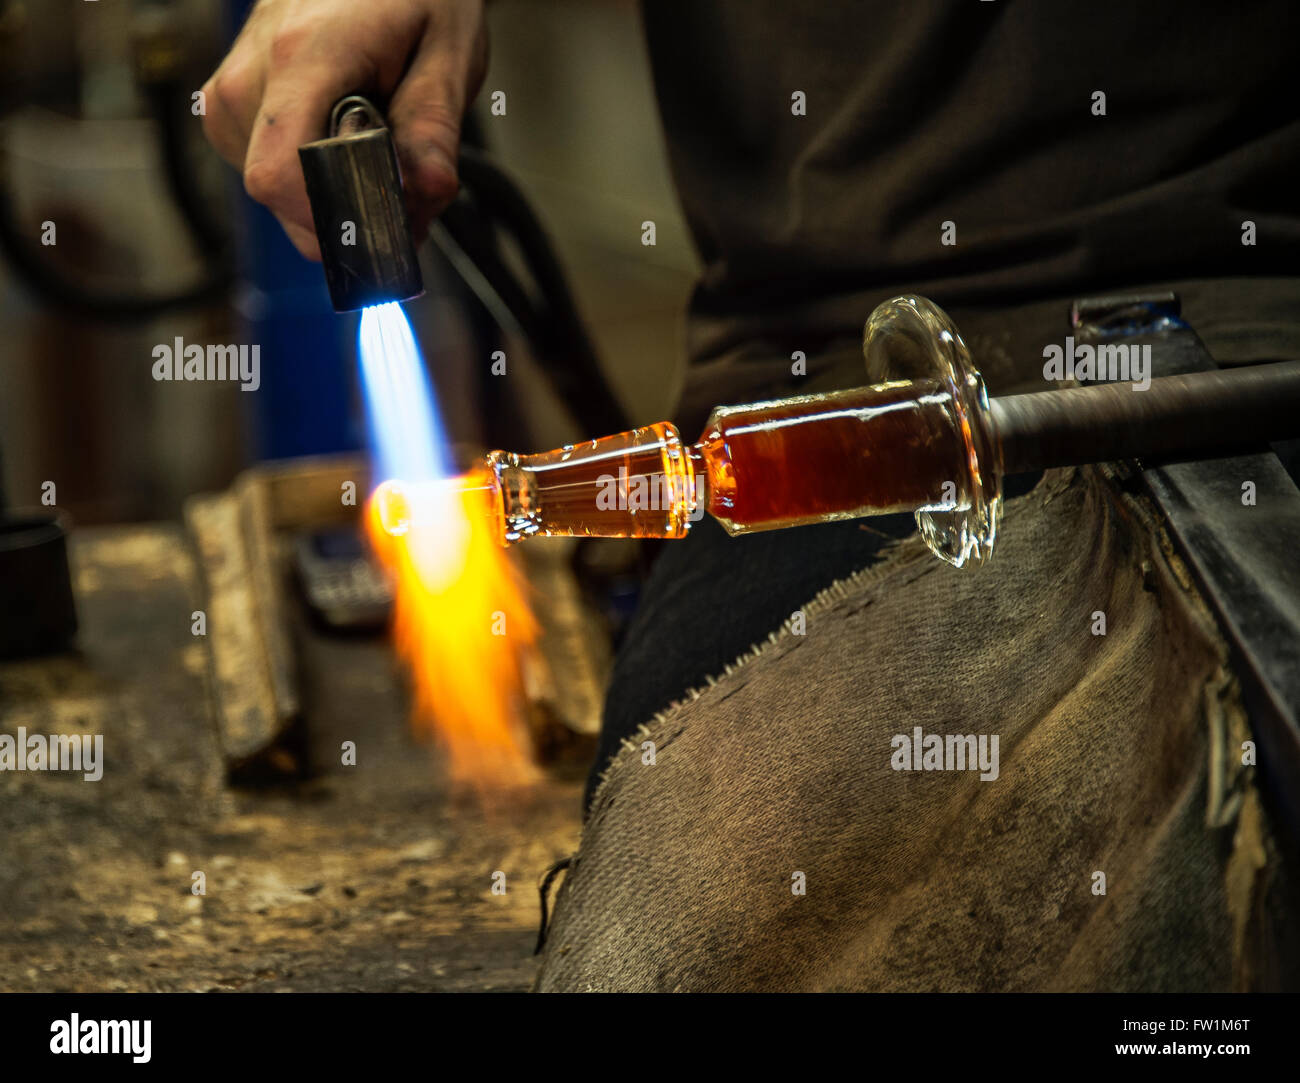 Glass artisan uses a hand torch to soften the piece he is working on. Stock Photo